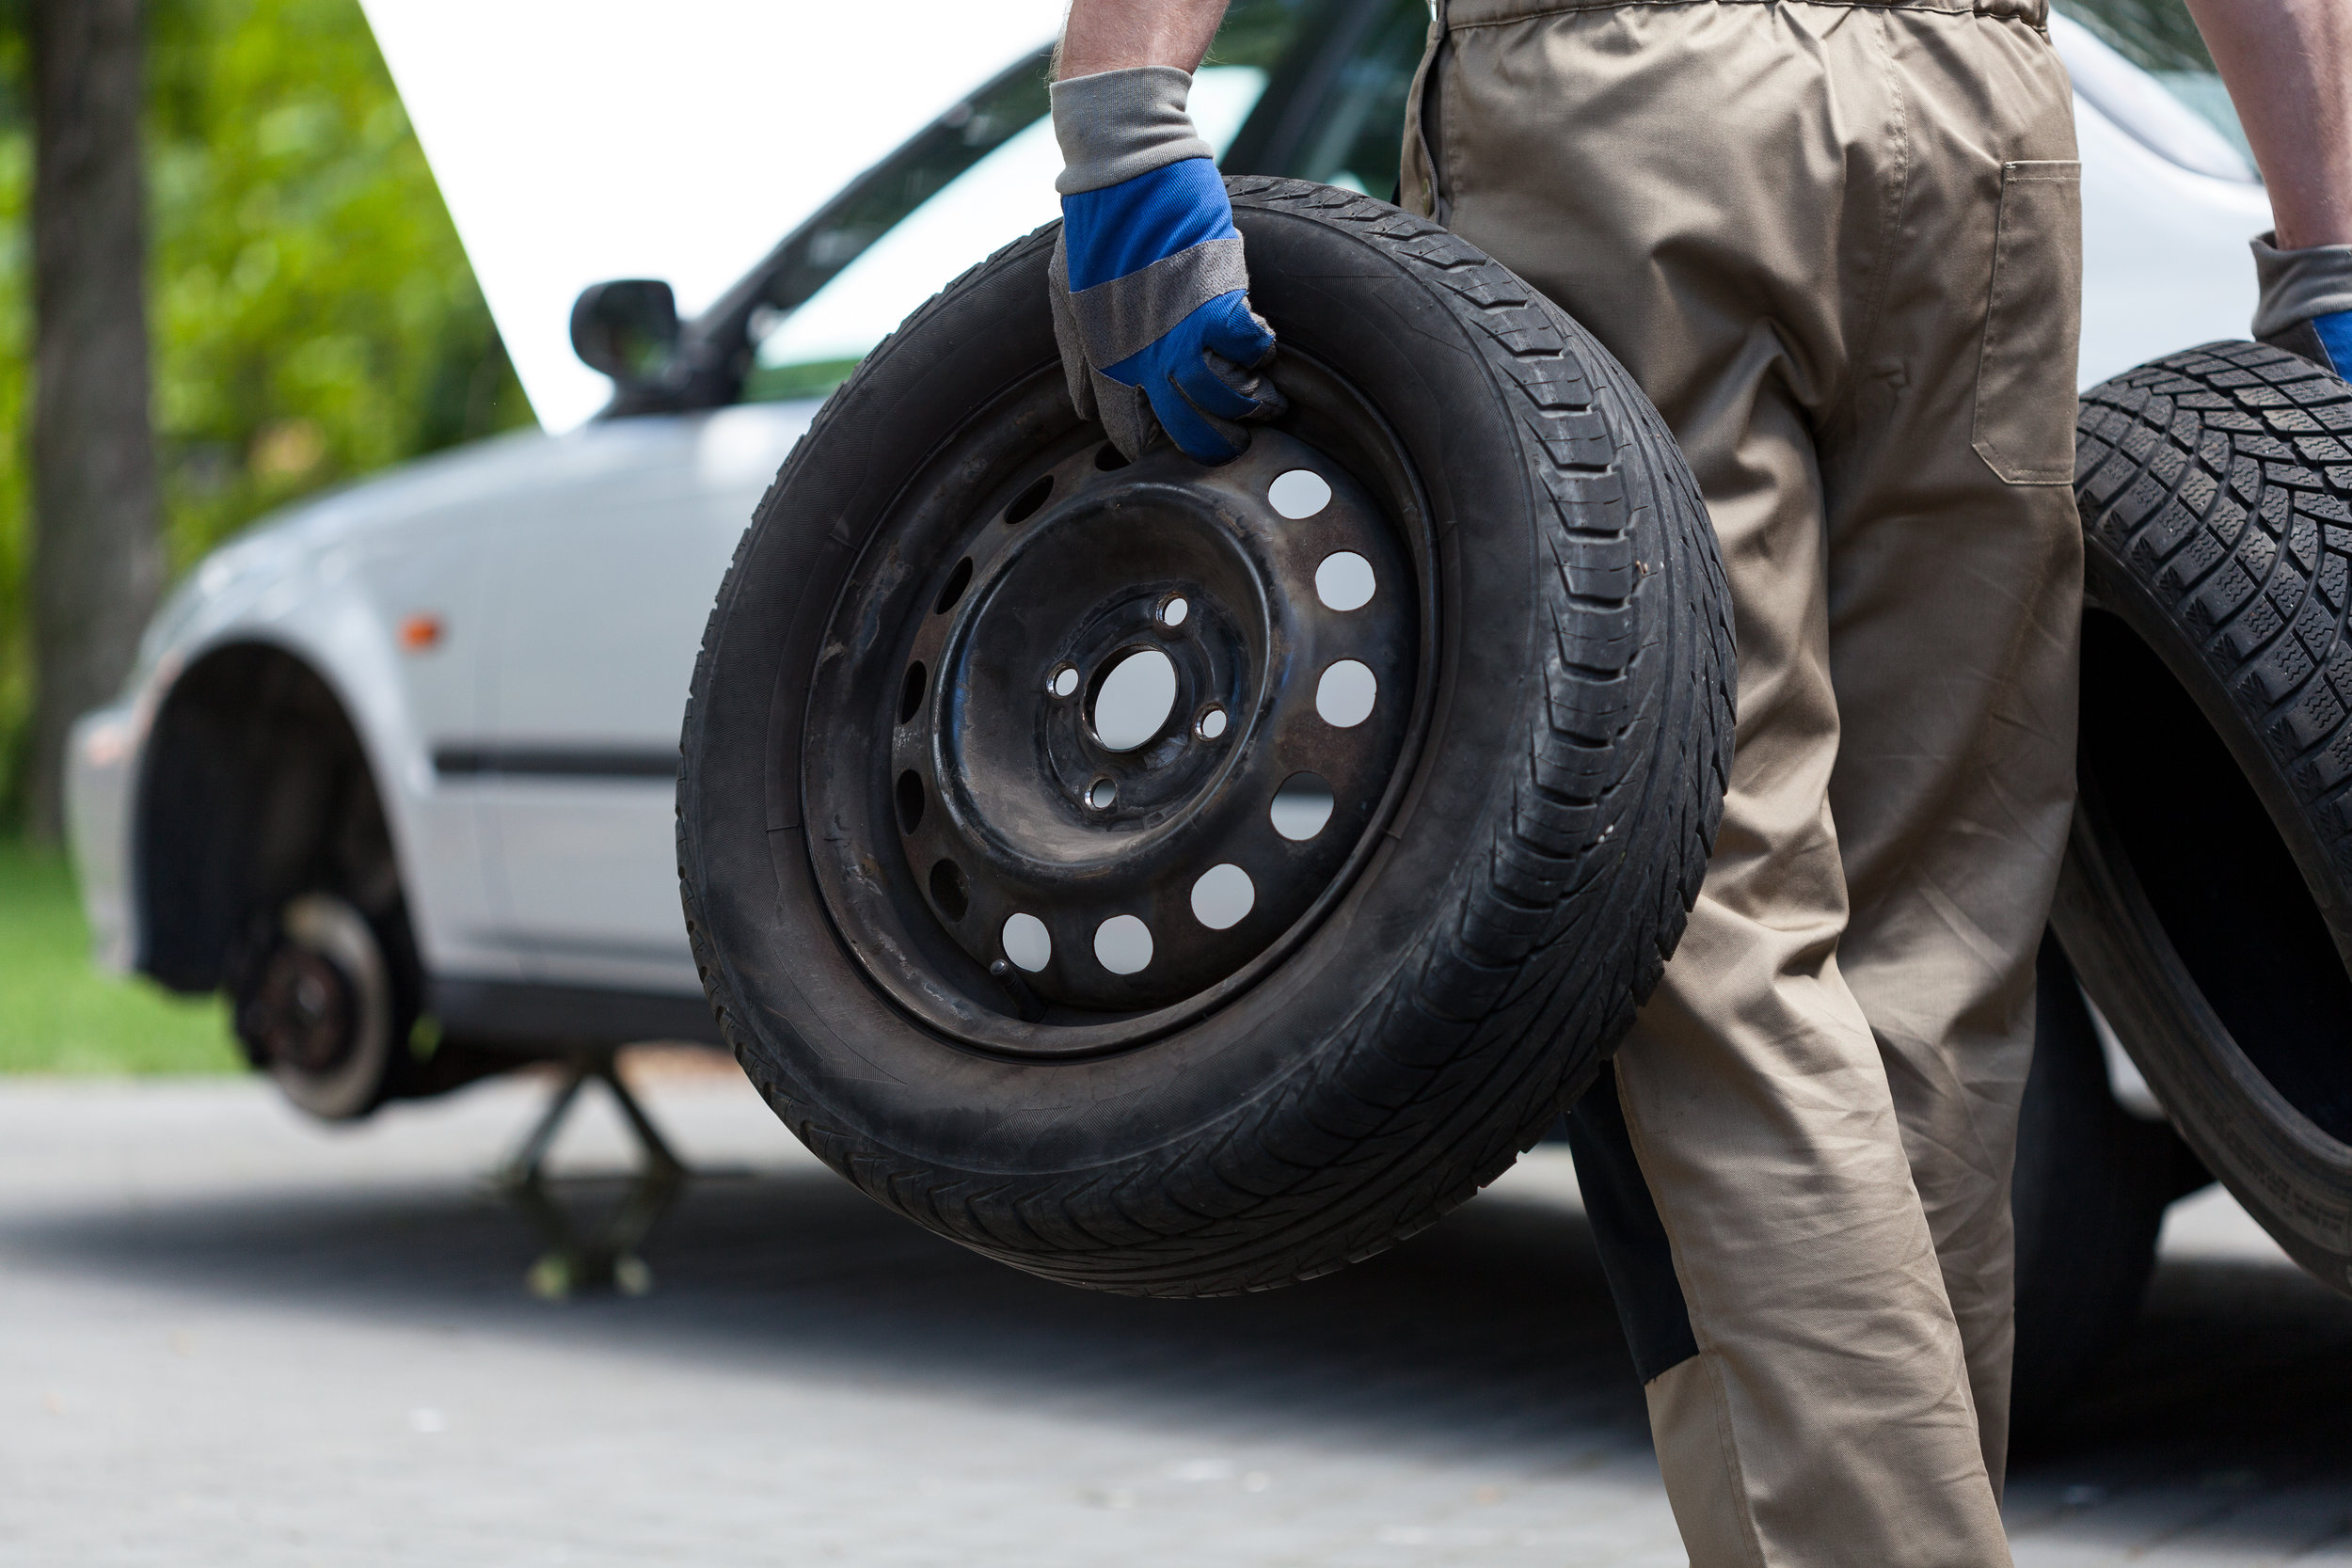 Flat Tire Assistance - Tire Change, Tire Repair, Full 24 Hour Mobile Tire Service.